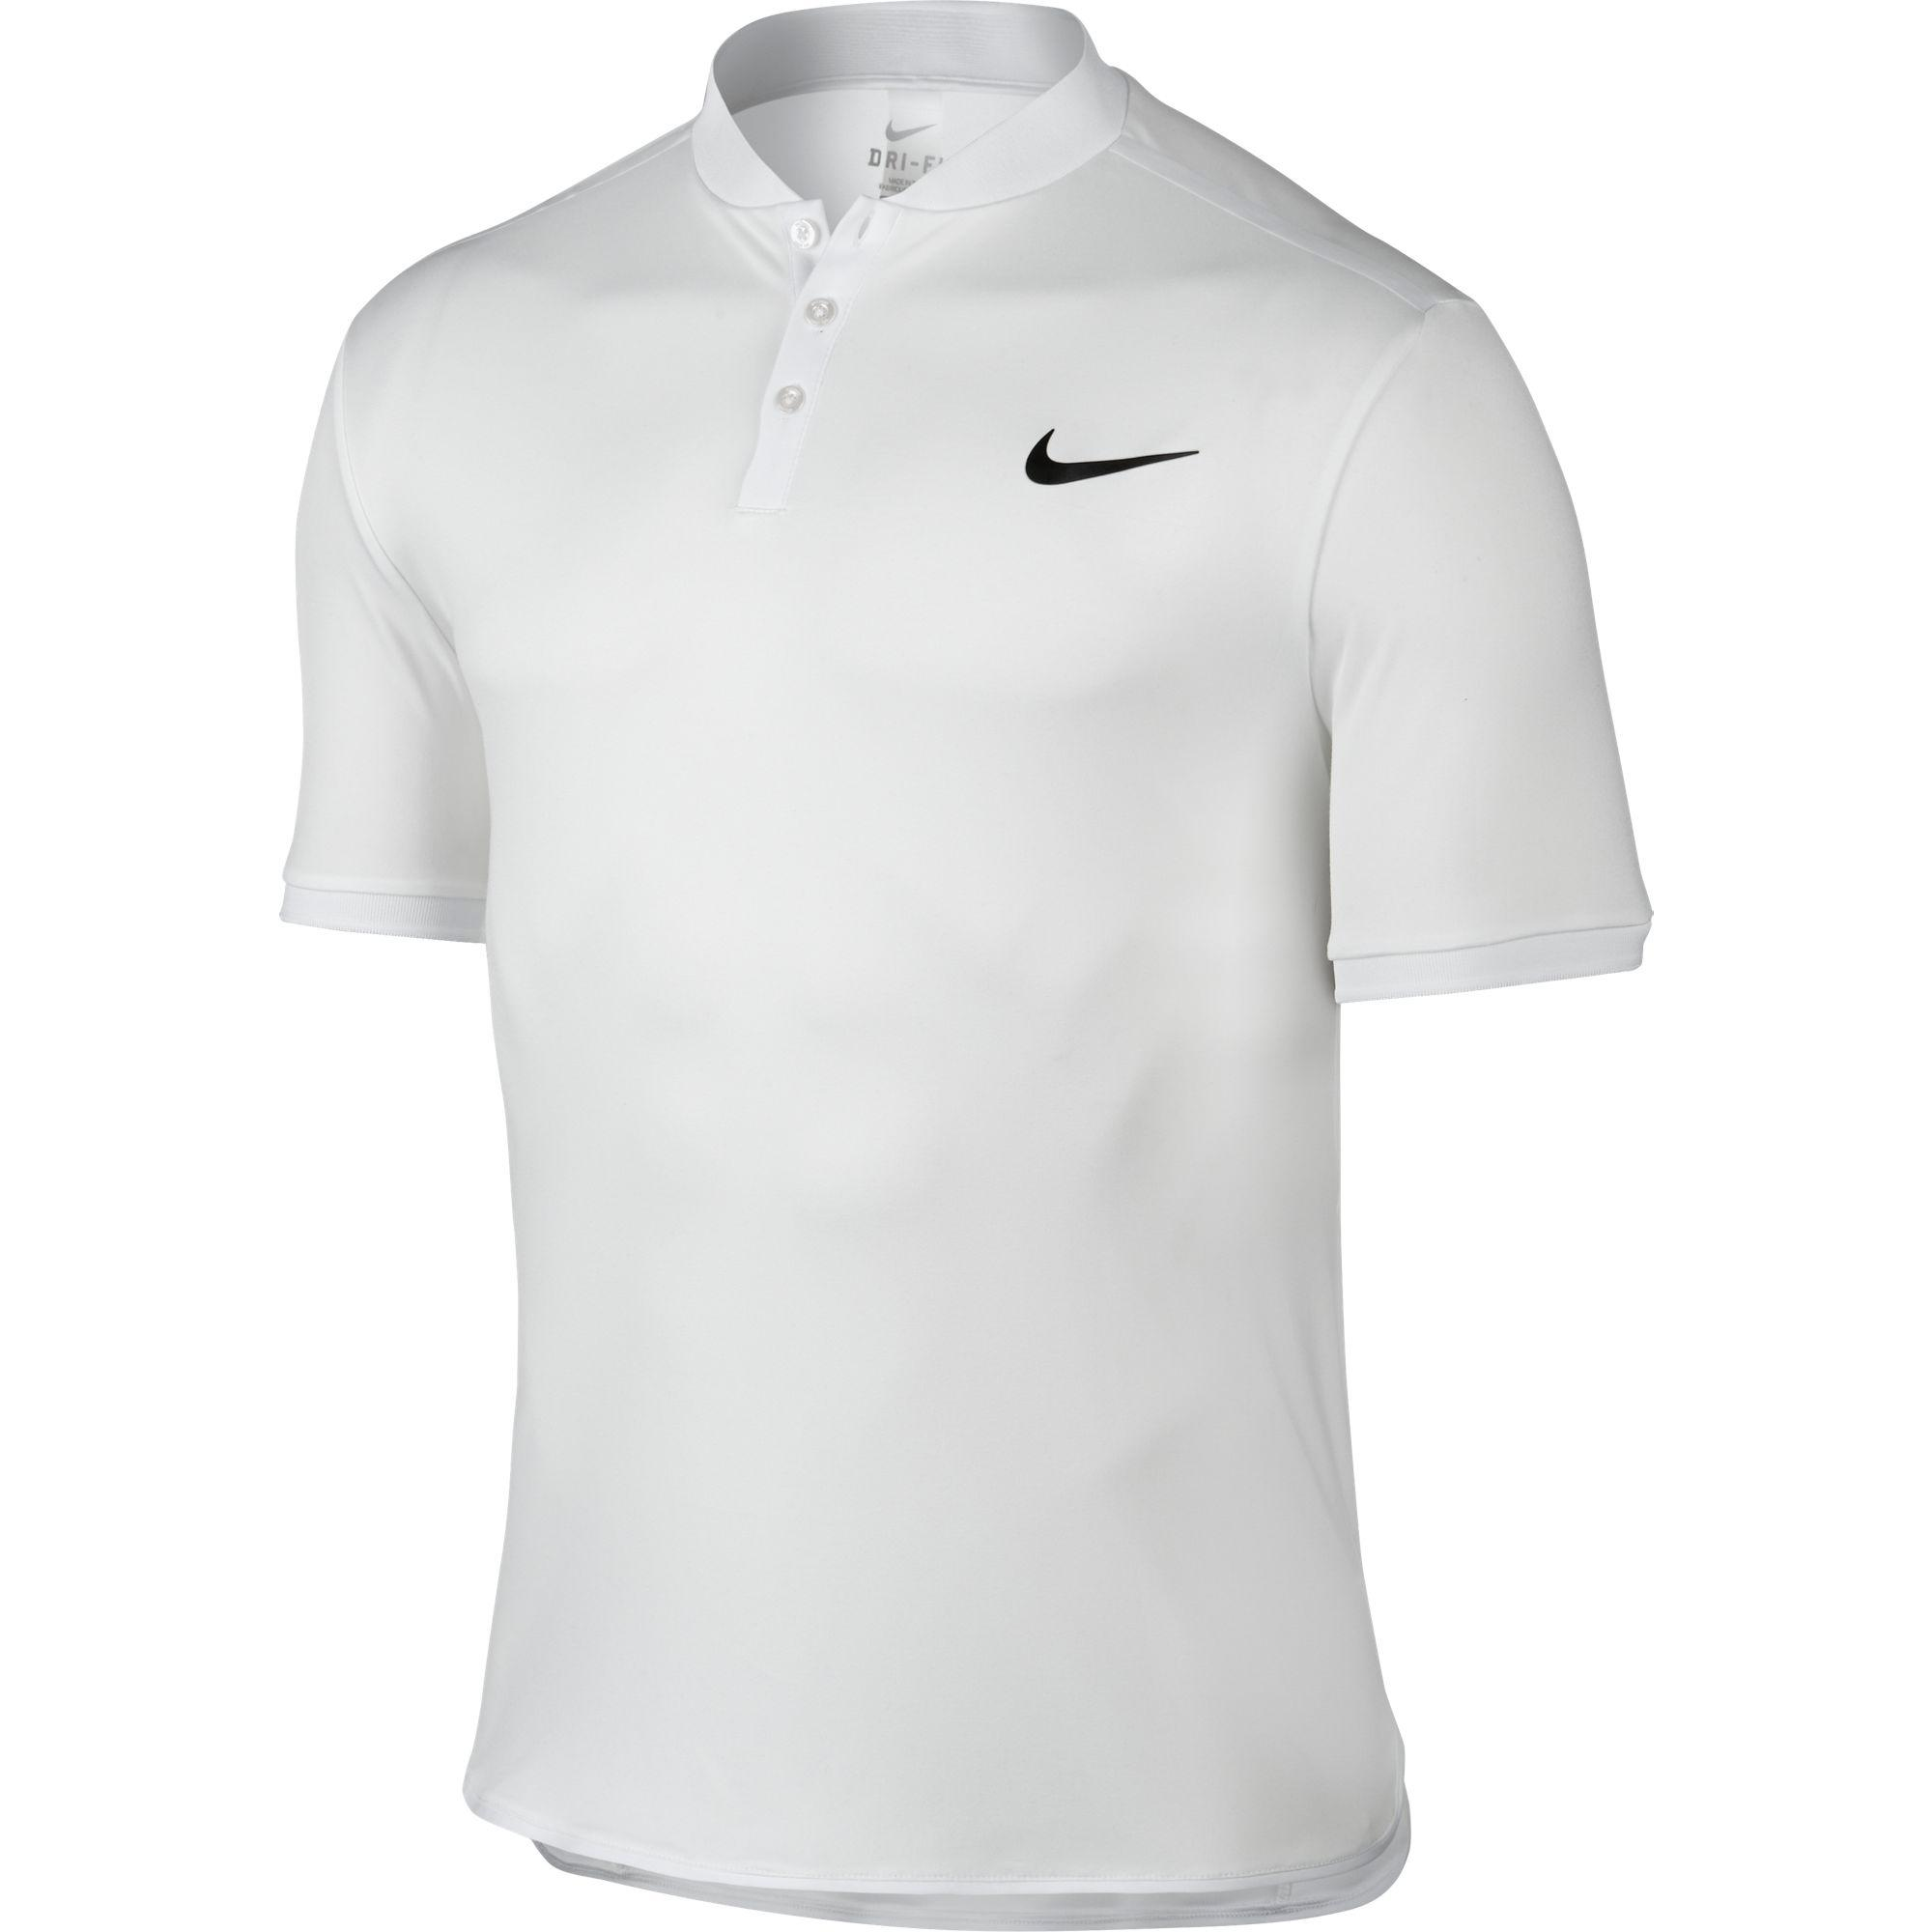 729384-100 Nike Advantage Premier Polo, 729384-100 Nike Advantage Premier Polo в Новосибирске, 729384-100 Nike Advantage Premier Polo цена, 729384-100 Nike Advantage Premier Polo купить, 729384-100 Nike Advantage Premier Polo приобрети, 729384-100 Nike Advantage Premier Polo дешево, 729384-100 Nike Advantage Premier Polo с доставкой, 729384-100 Nike Advantage Premier Polo от дистрибьютора.